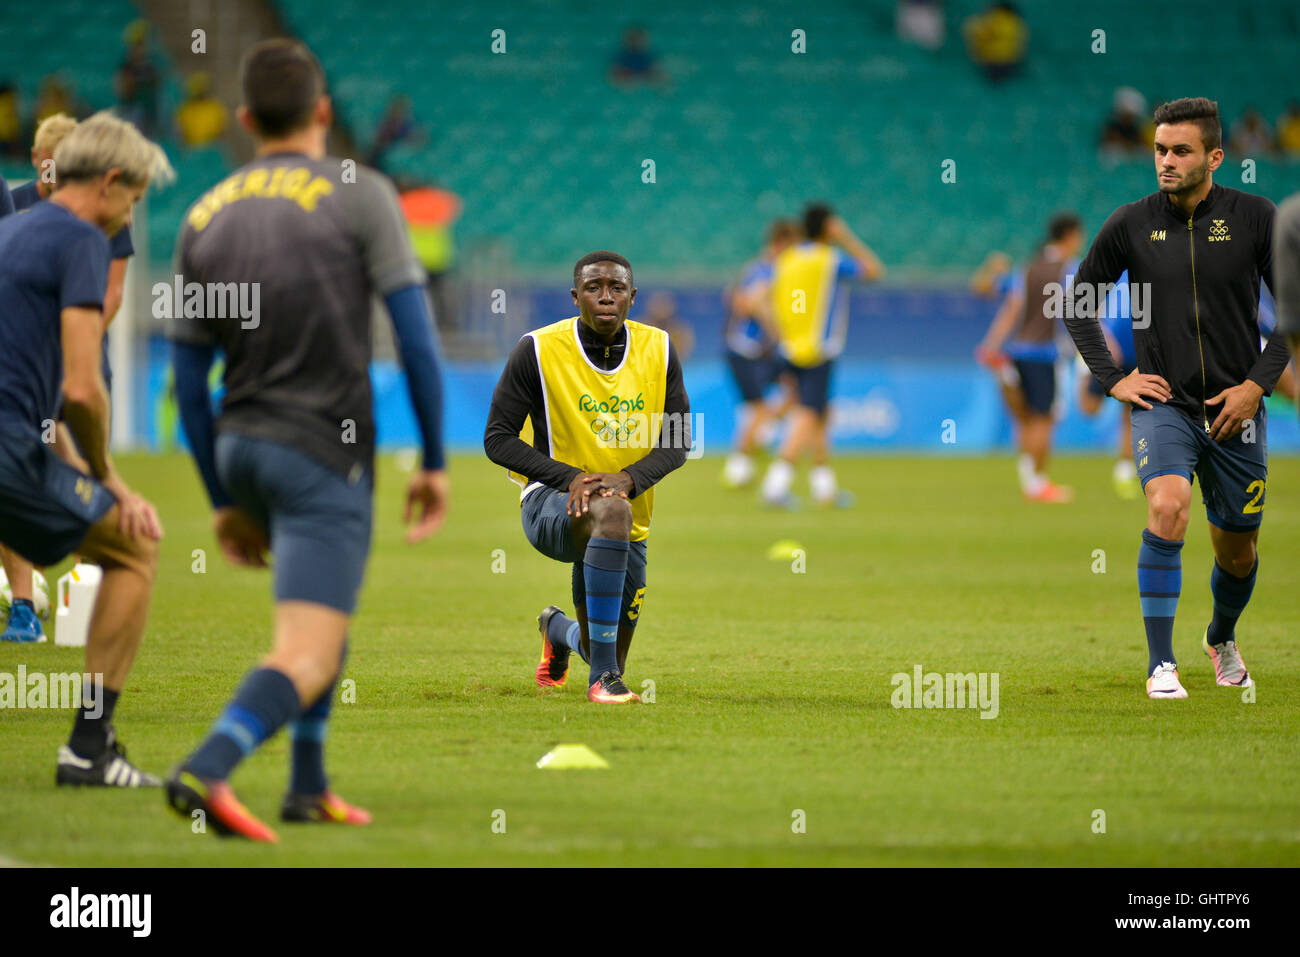 Salvador, Brazil. 10th August, 2016. OLYMPICS 2016 FOOTBALL SALVADOR - Heating the Swedish team before the match Stock Photo